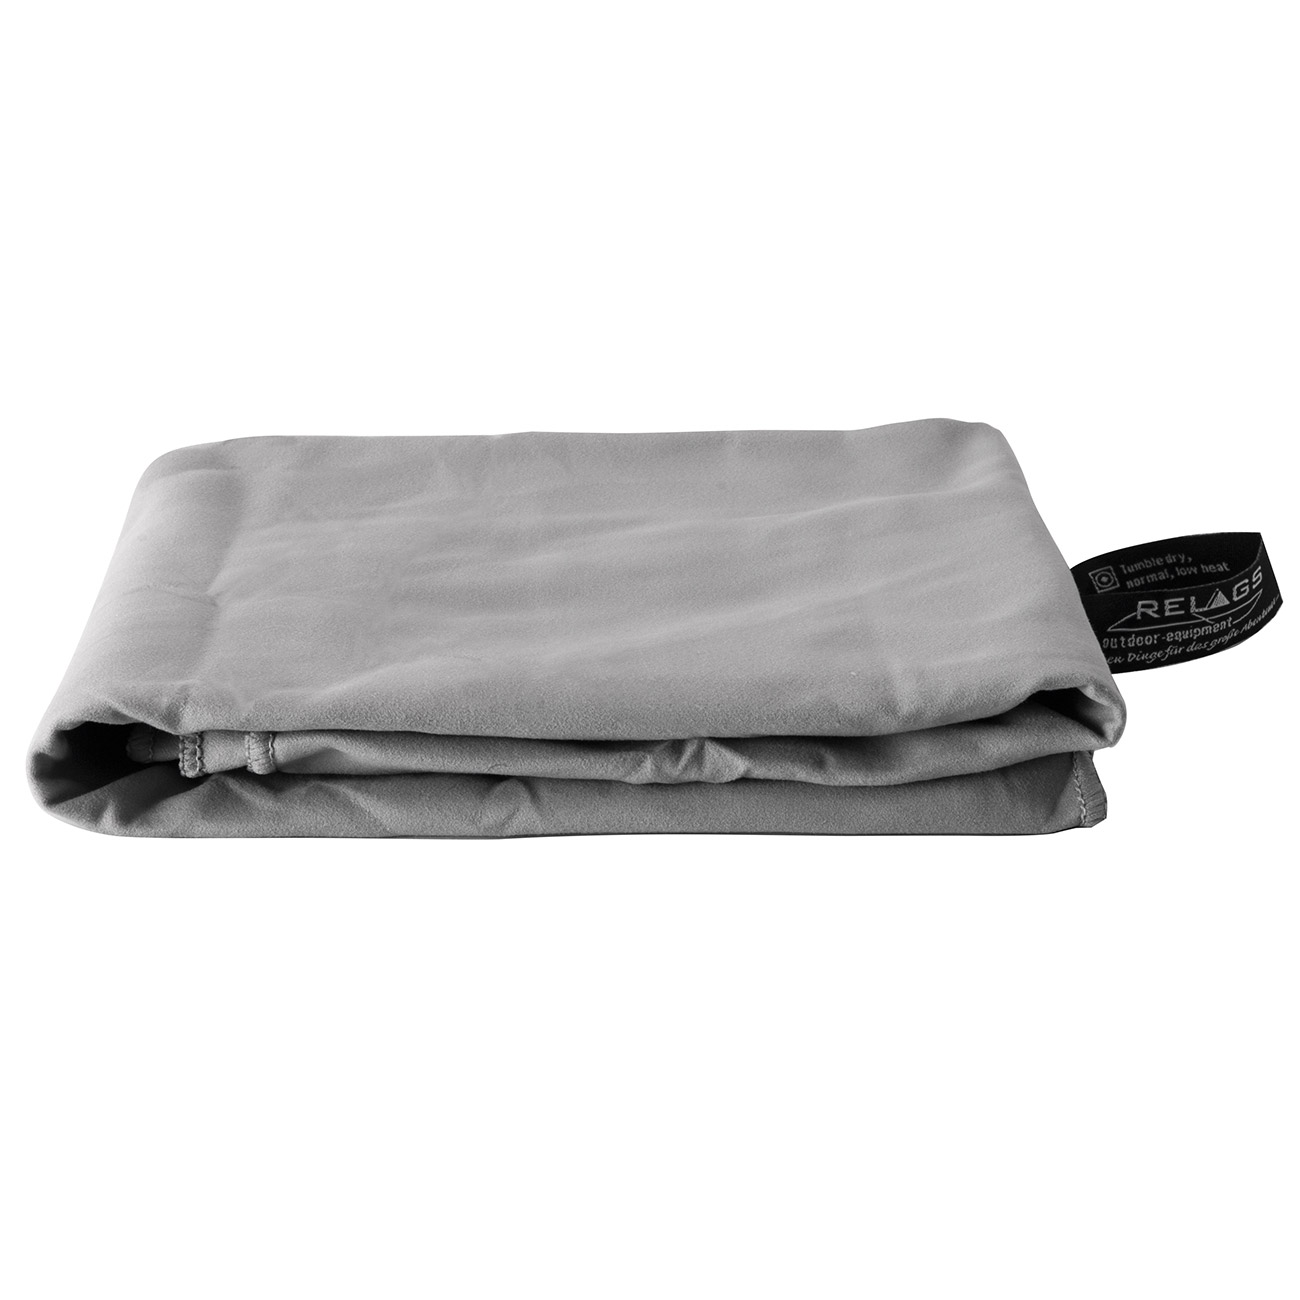 Relags Outdoor-Handtuch Basic Nature Velour 60 x 120 cm grau 0